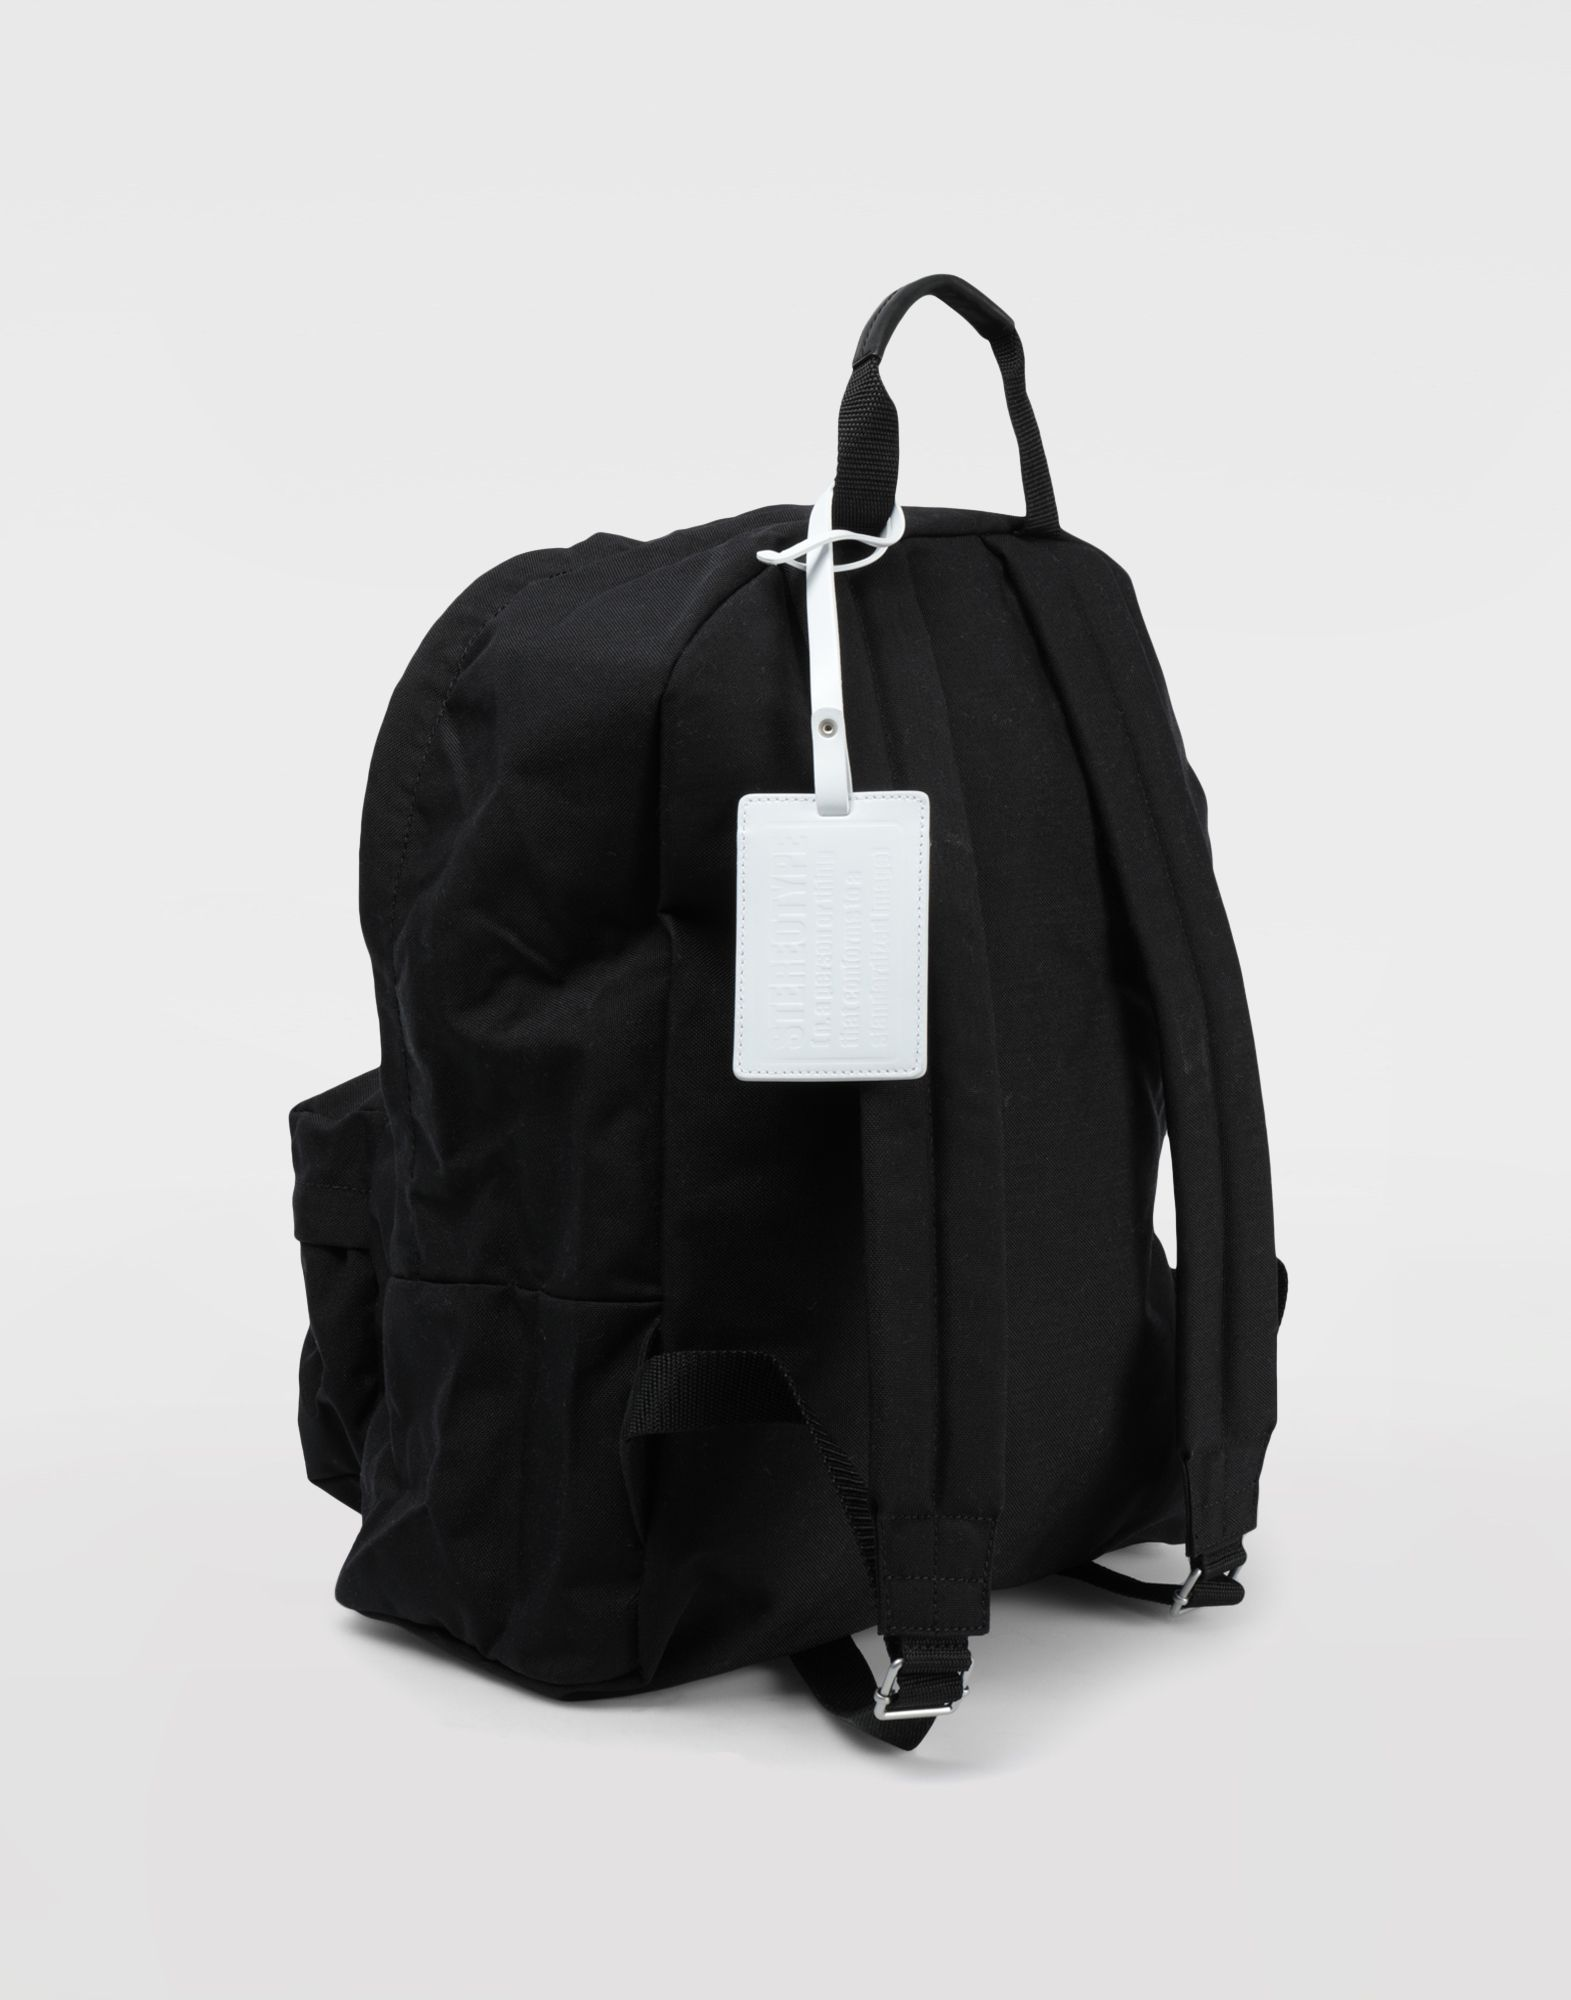 MAISON MARGIELA 'Stereotype' backpack Backpack Man d